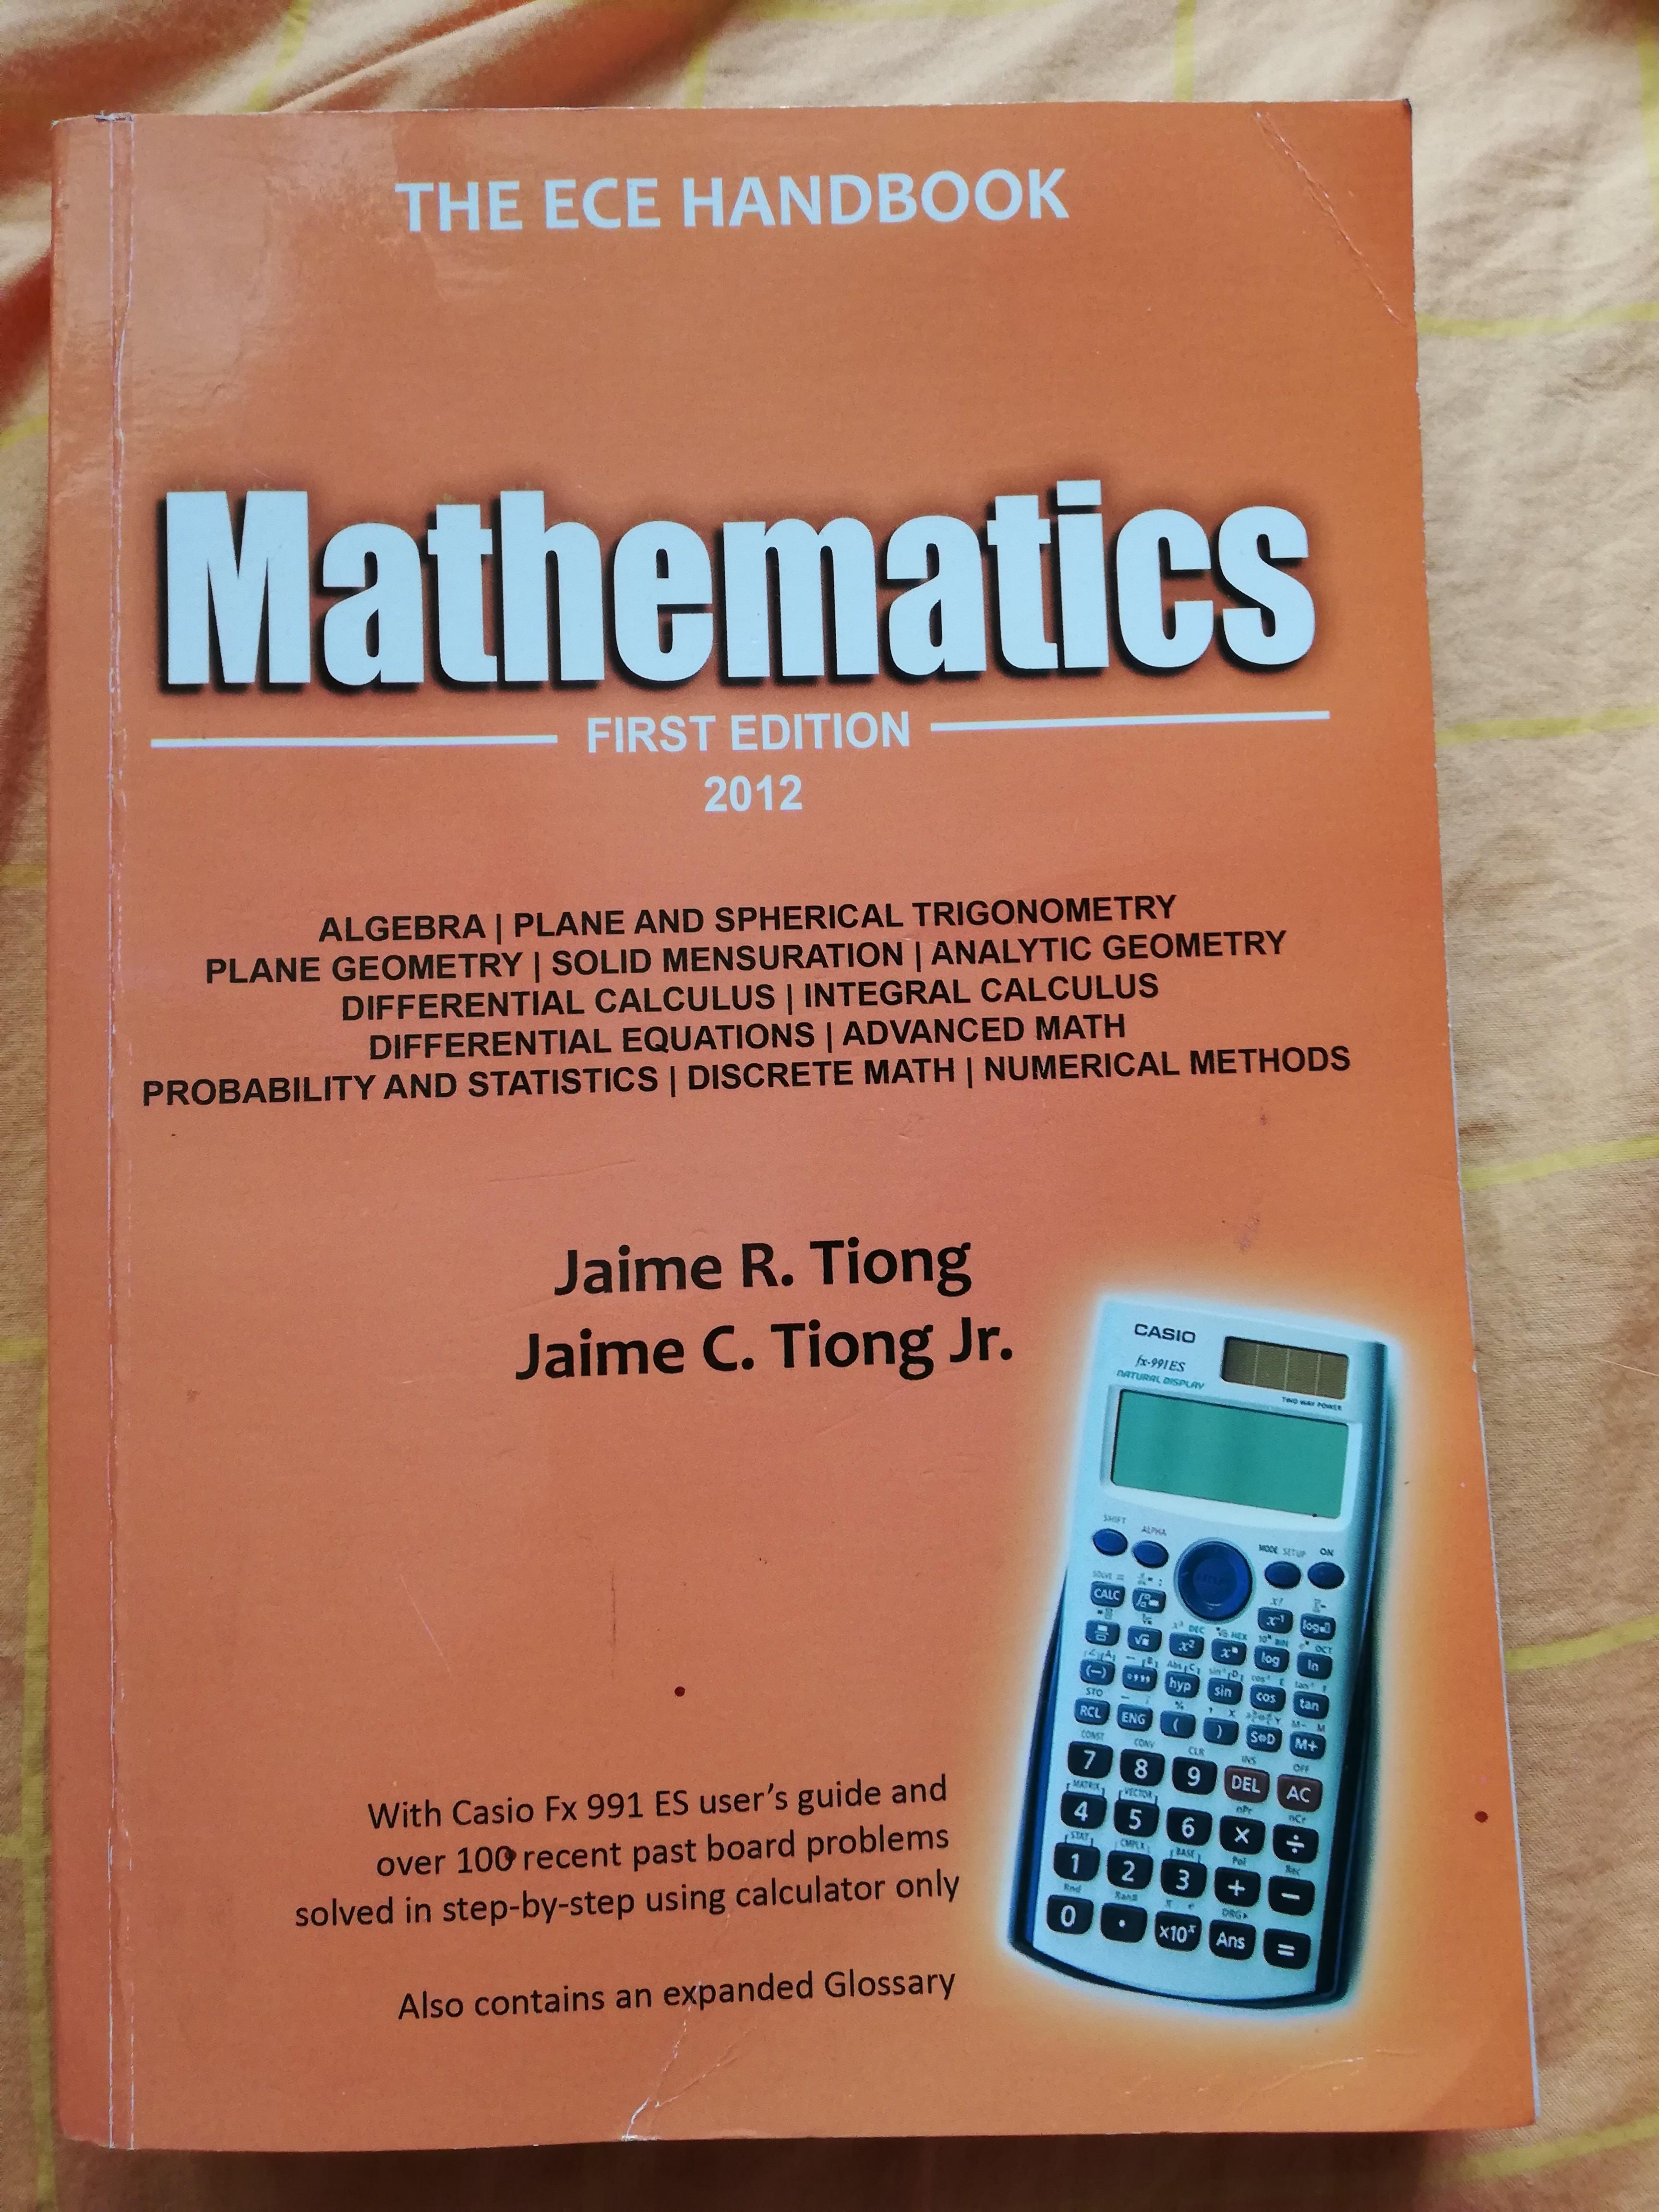 ECE HandbookGeneral Engineering and Applied Sciences Mathematics by Jaime R. Tiong & Jaime C. Tiong Jr. Electronics Engineering  ECE BOARD EXAM REVIEWER